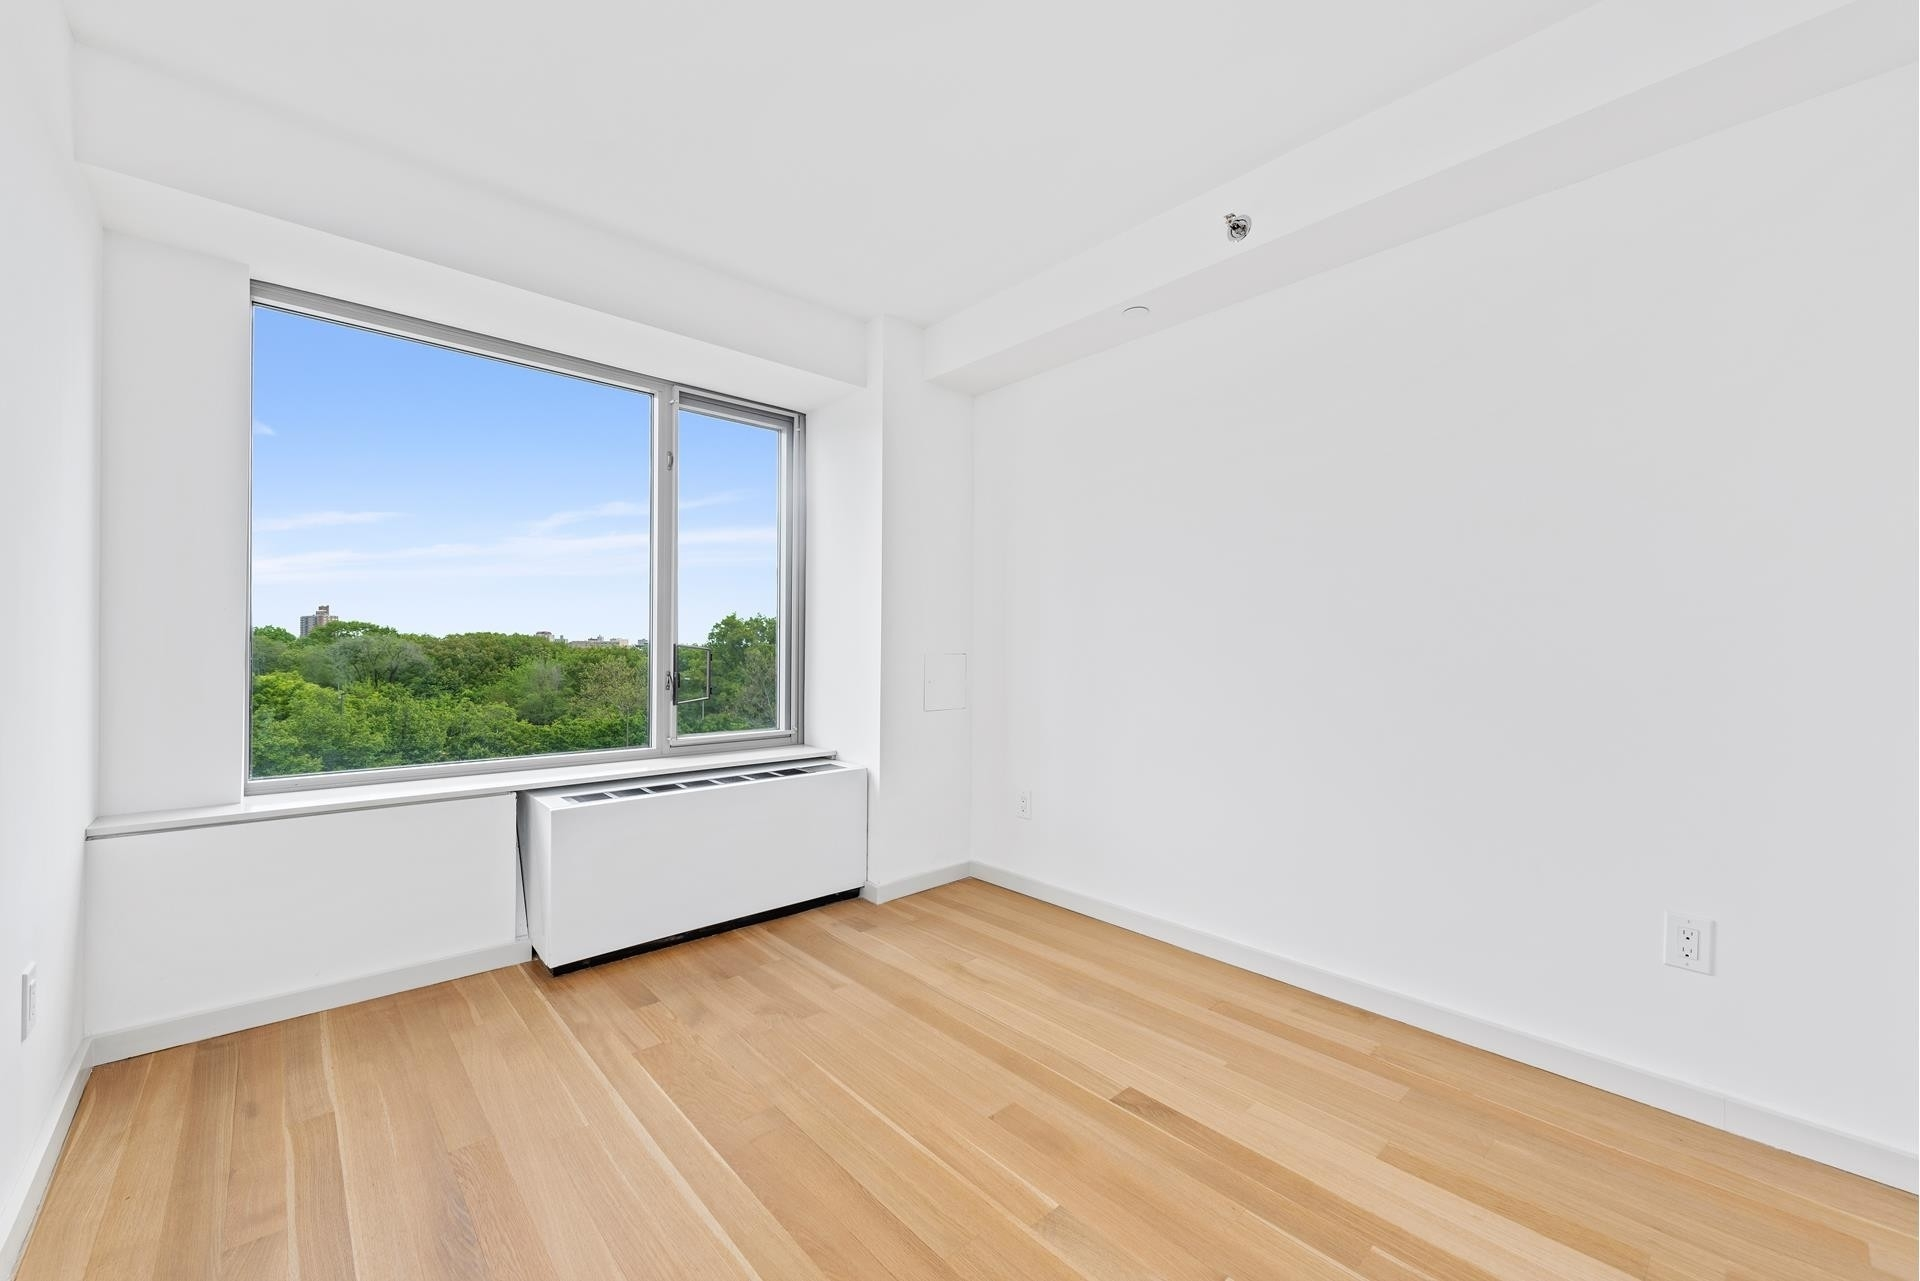 Rentals at Highbridge, The, 446 W 167TH ST , 6C Washington Heights, New York, NY 10032